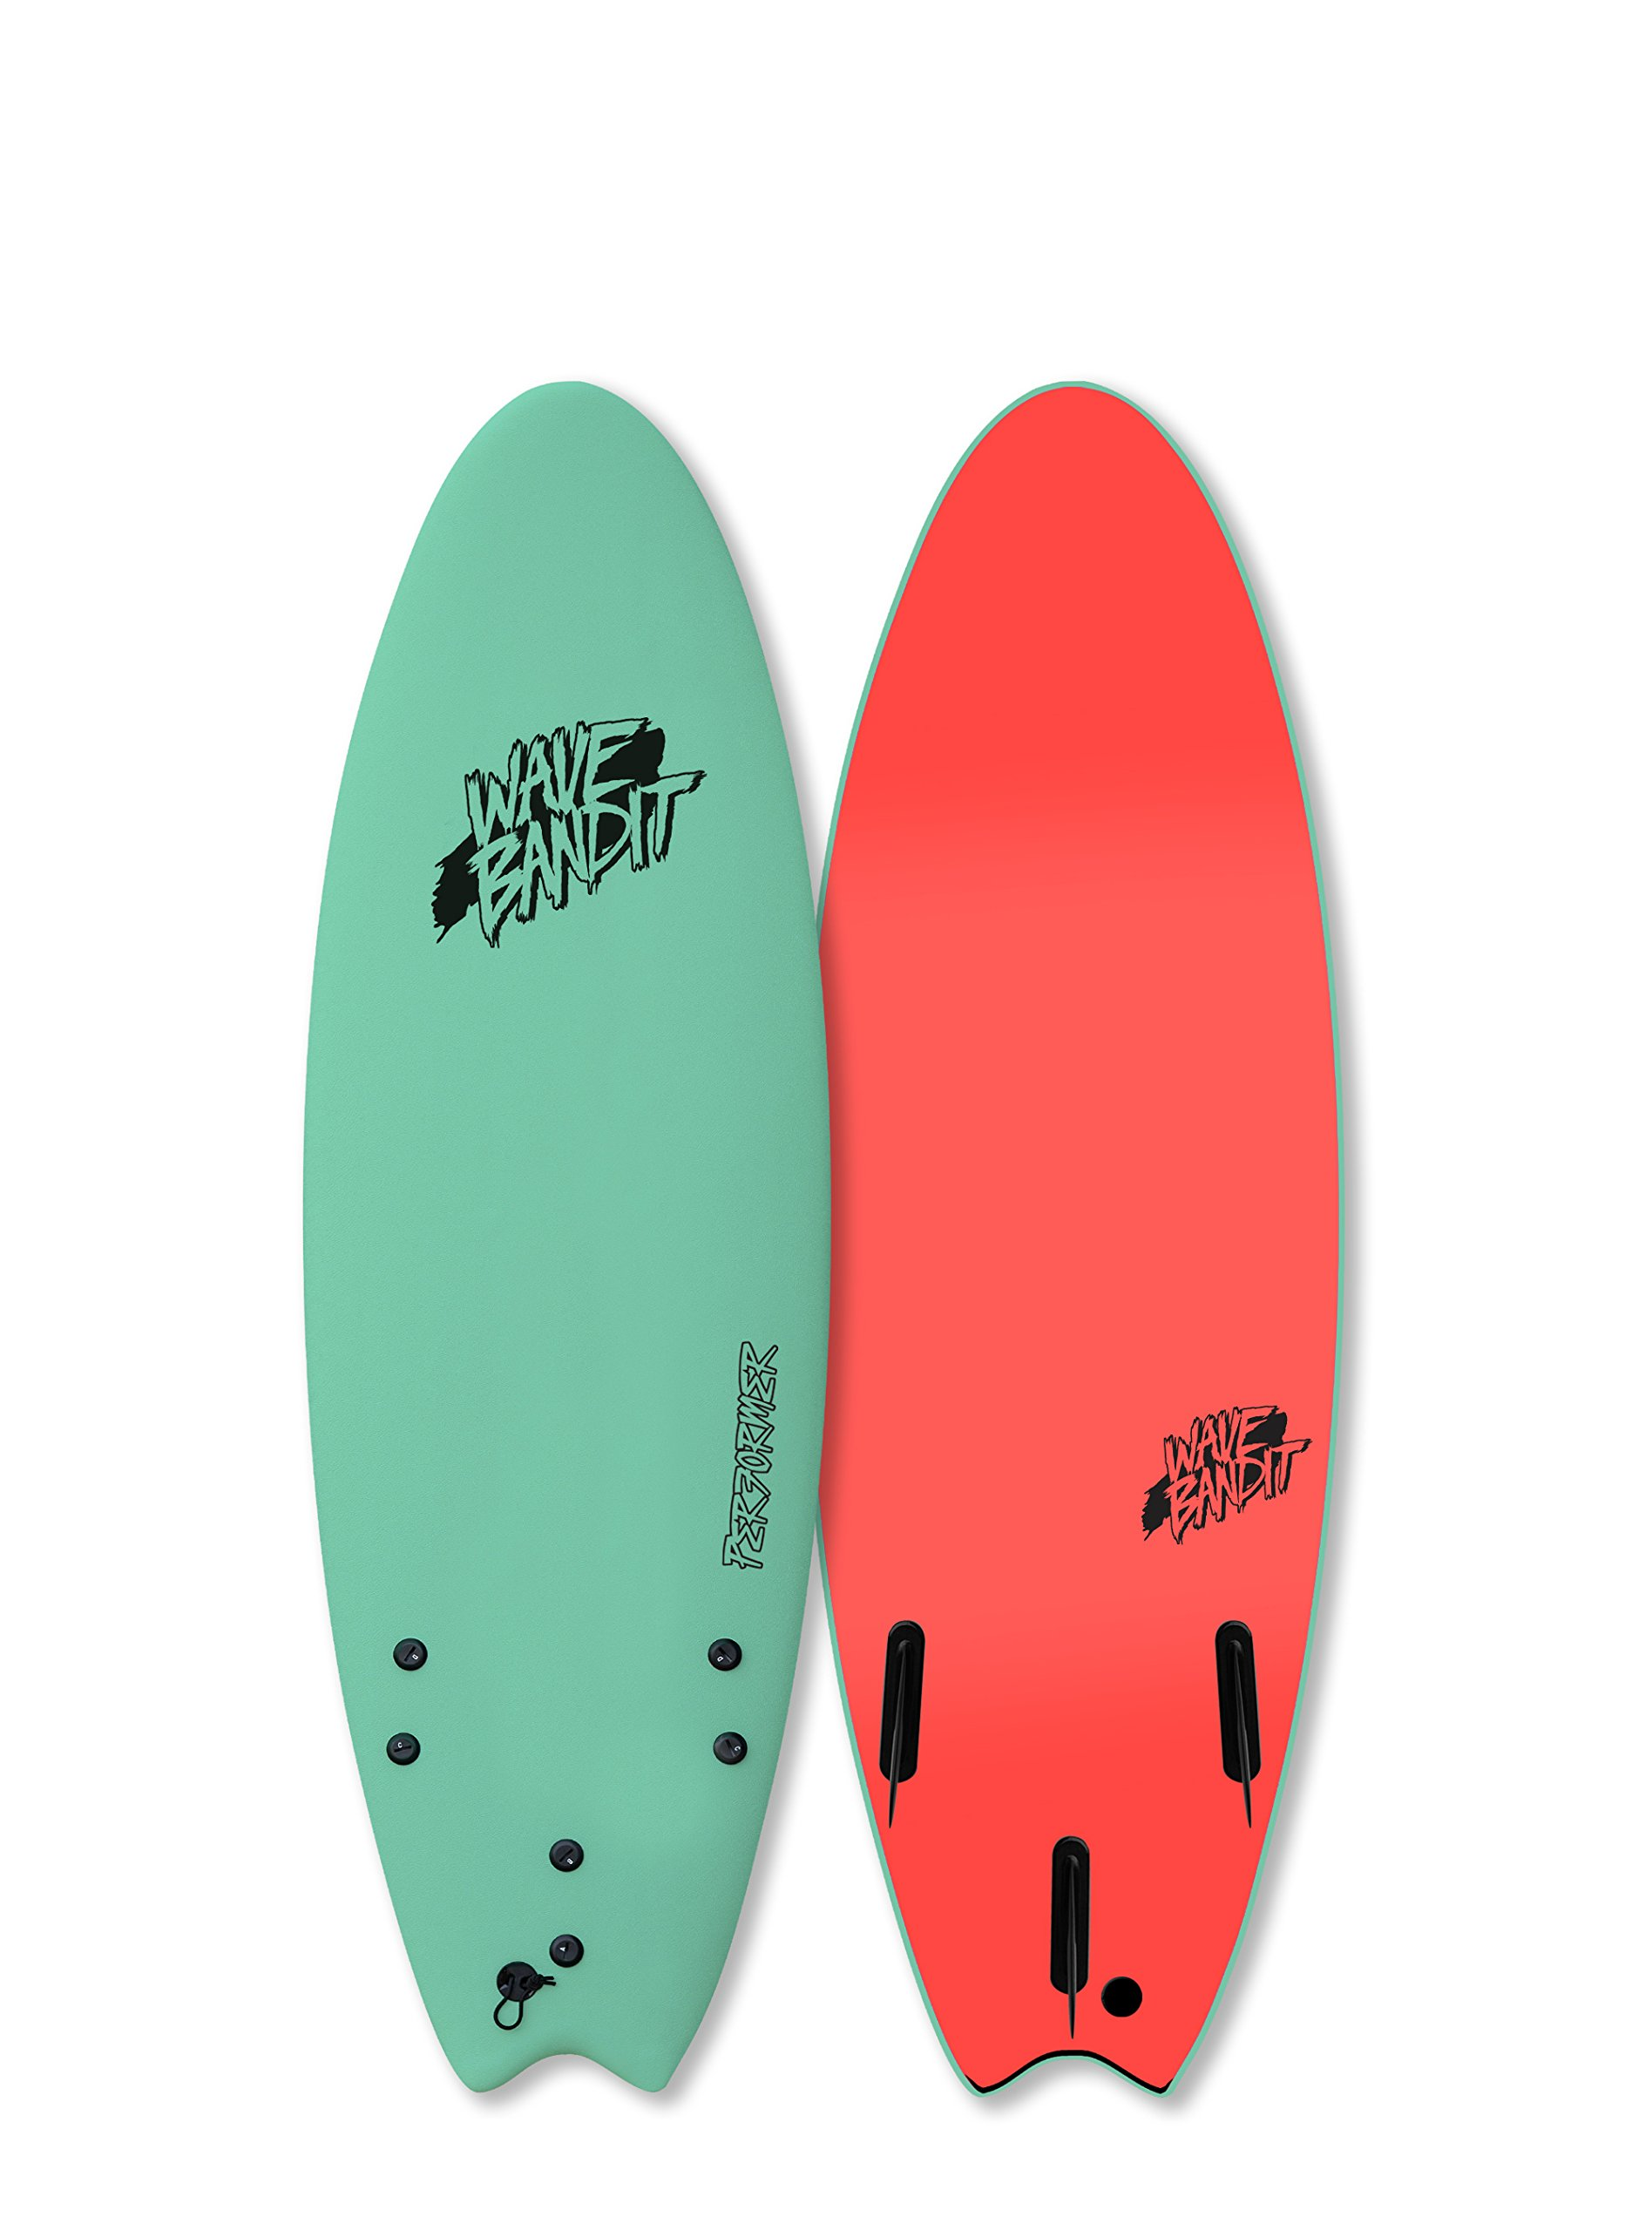 Wave Bandit Performer Tri, Mint, 5'6''